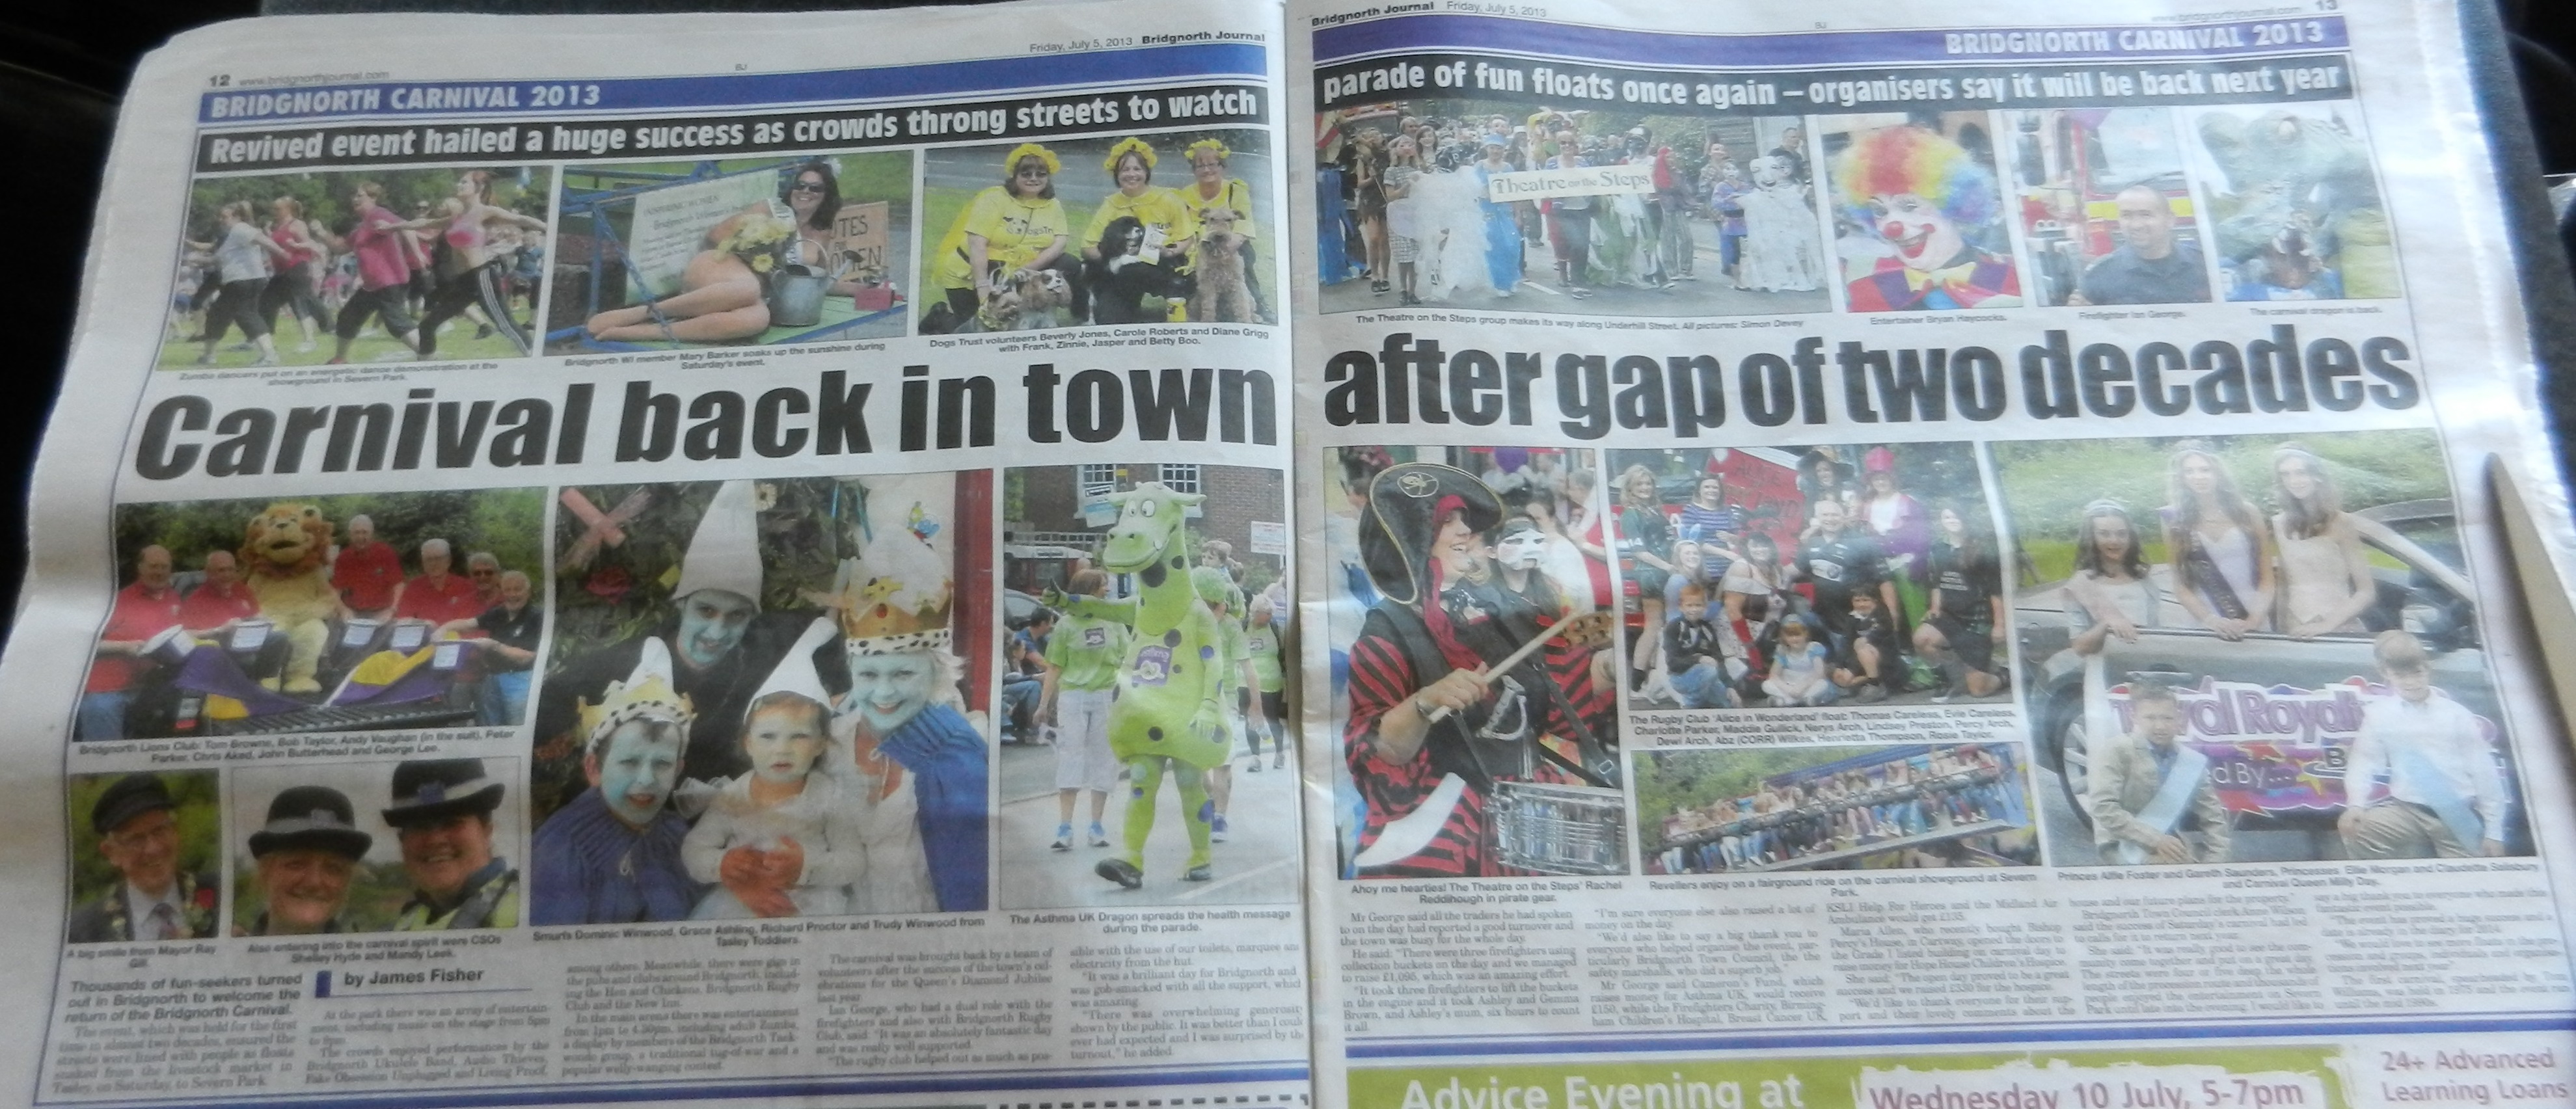 Bridgnorth Journal's article on the Bridgnorth Carnival, which we were proud to be a part of!